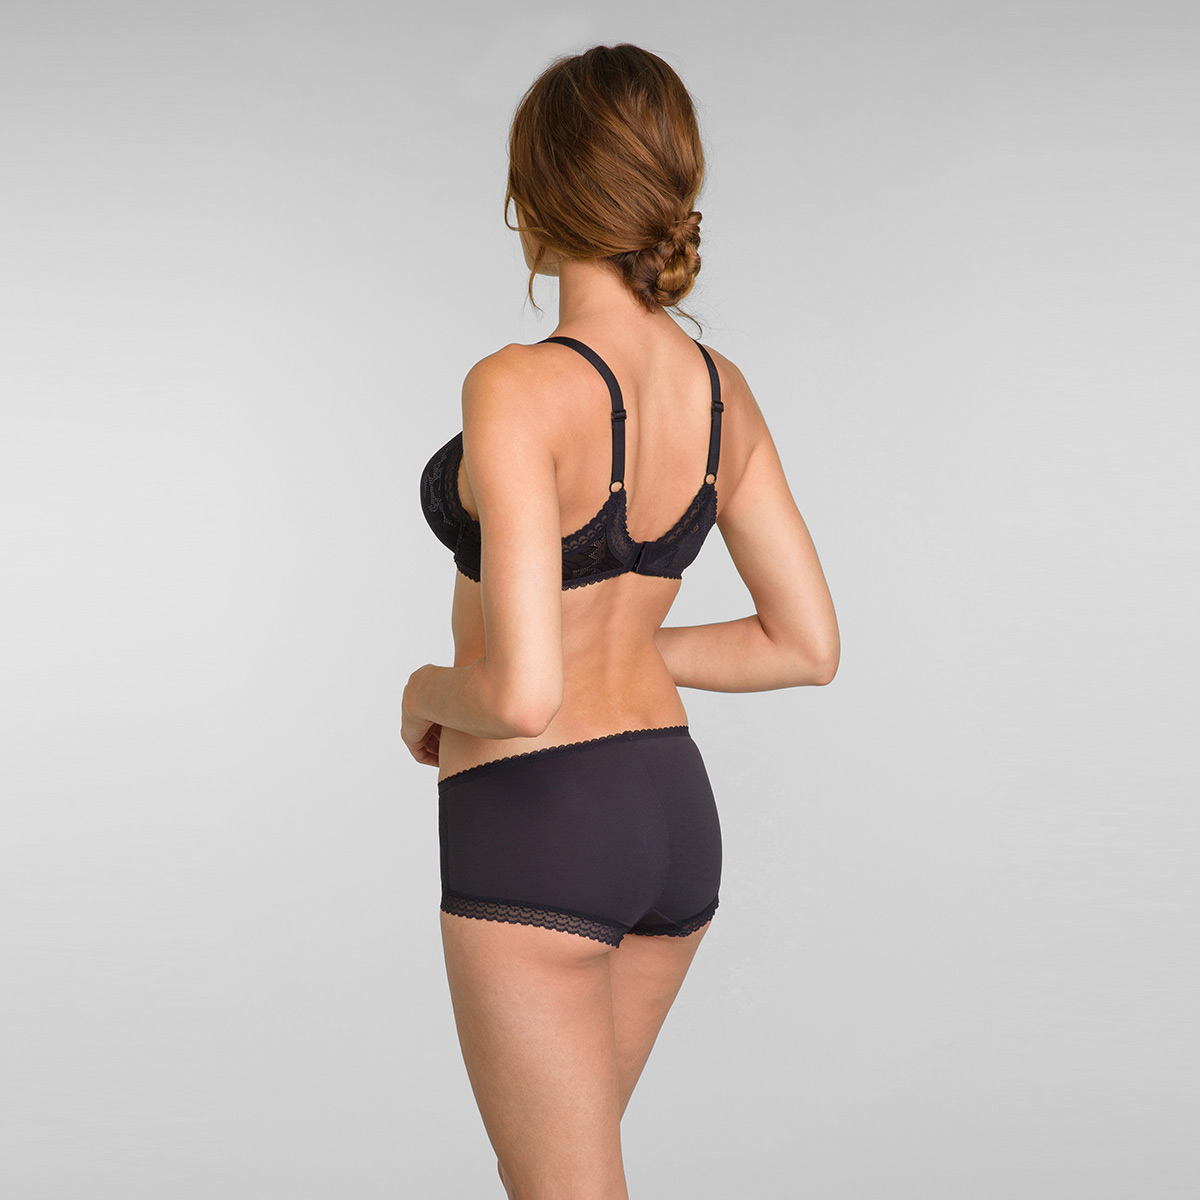 Soutien-gorge invisible triangle noir - Invisible Elegance, , PLAYTEX